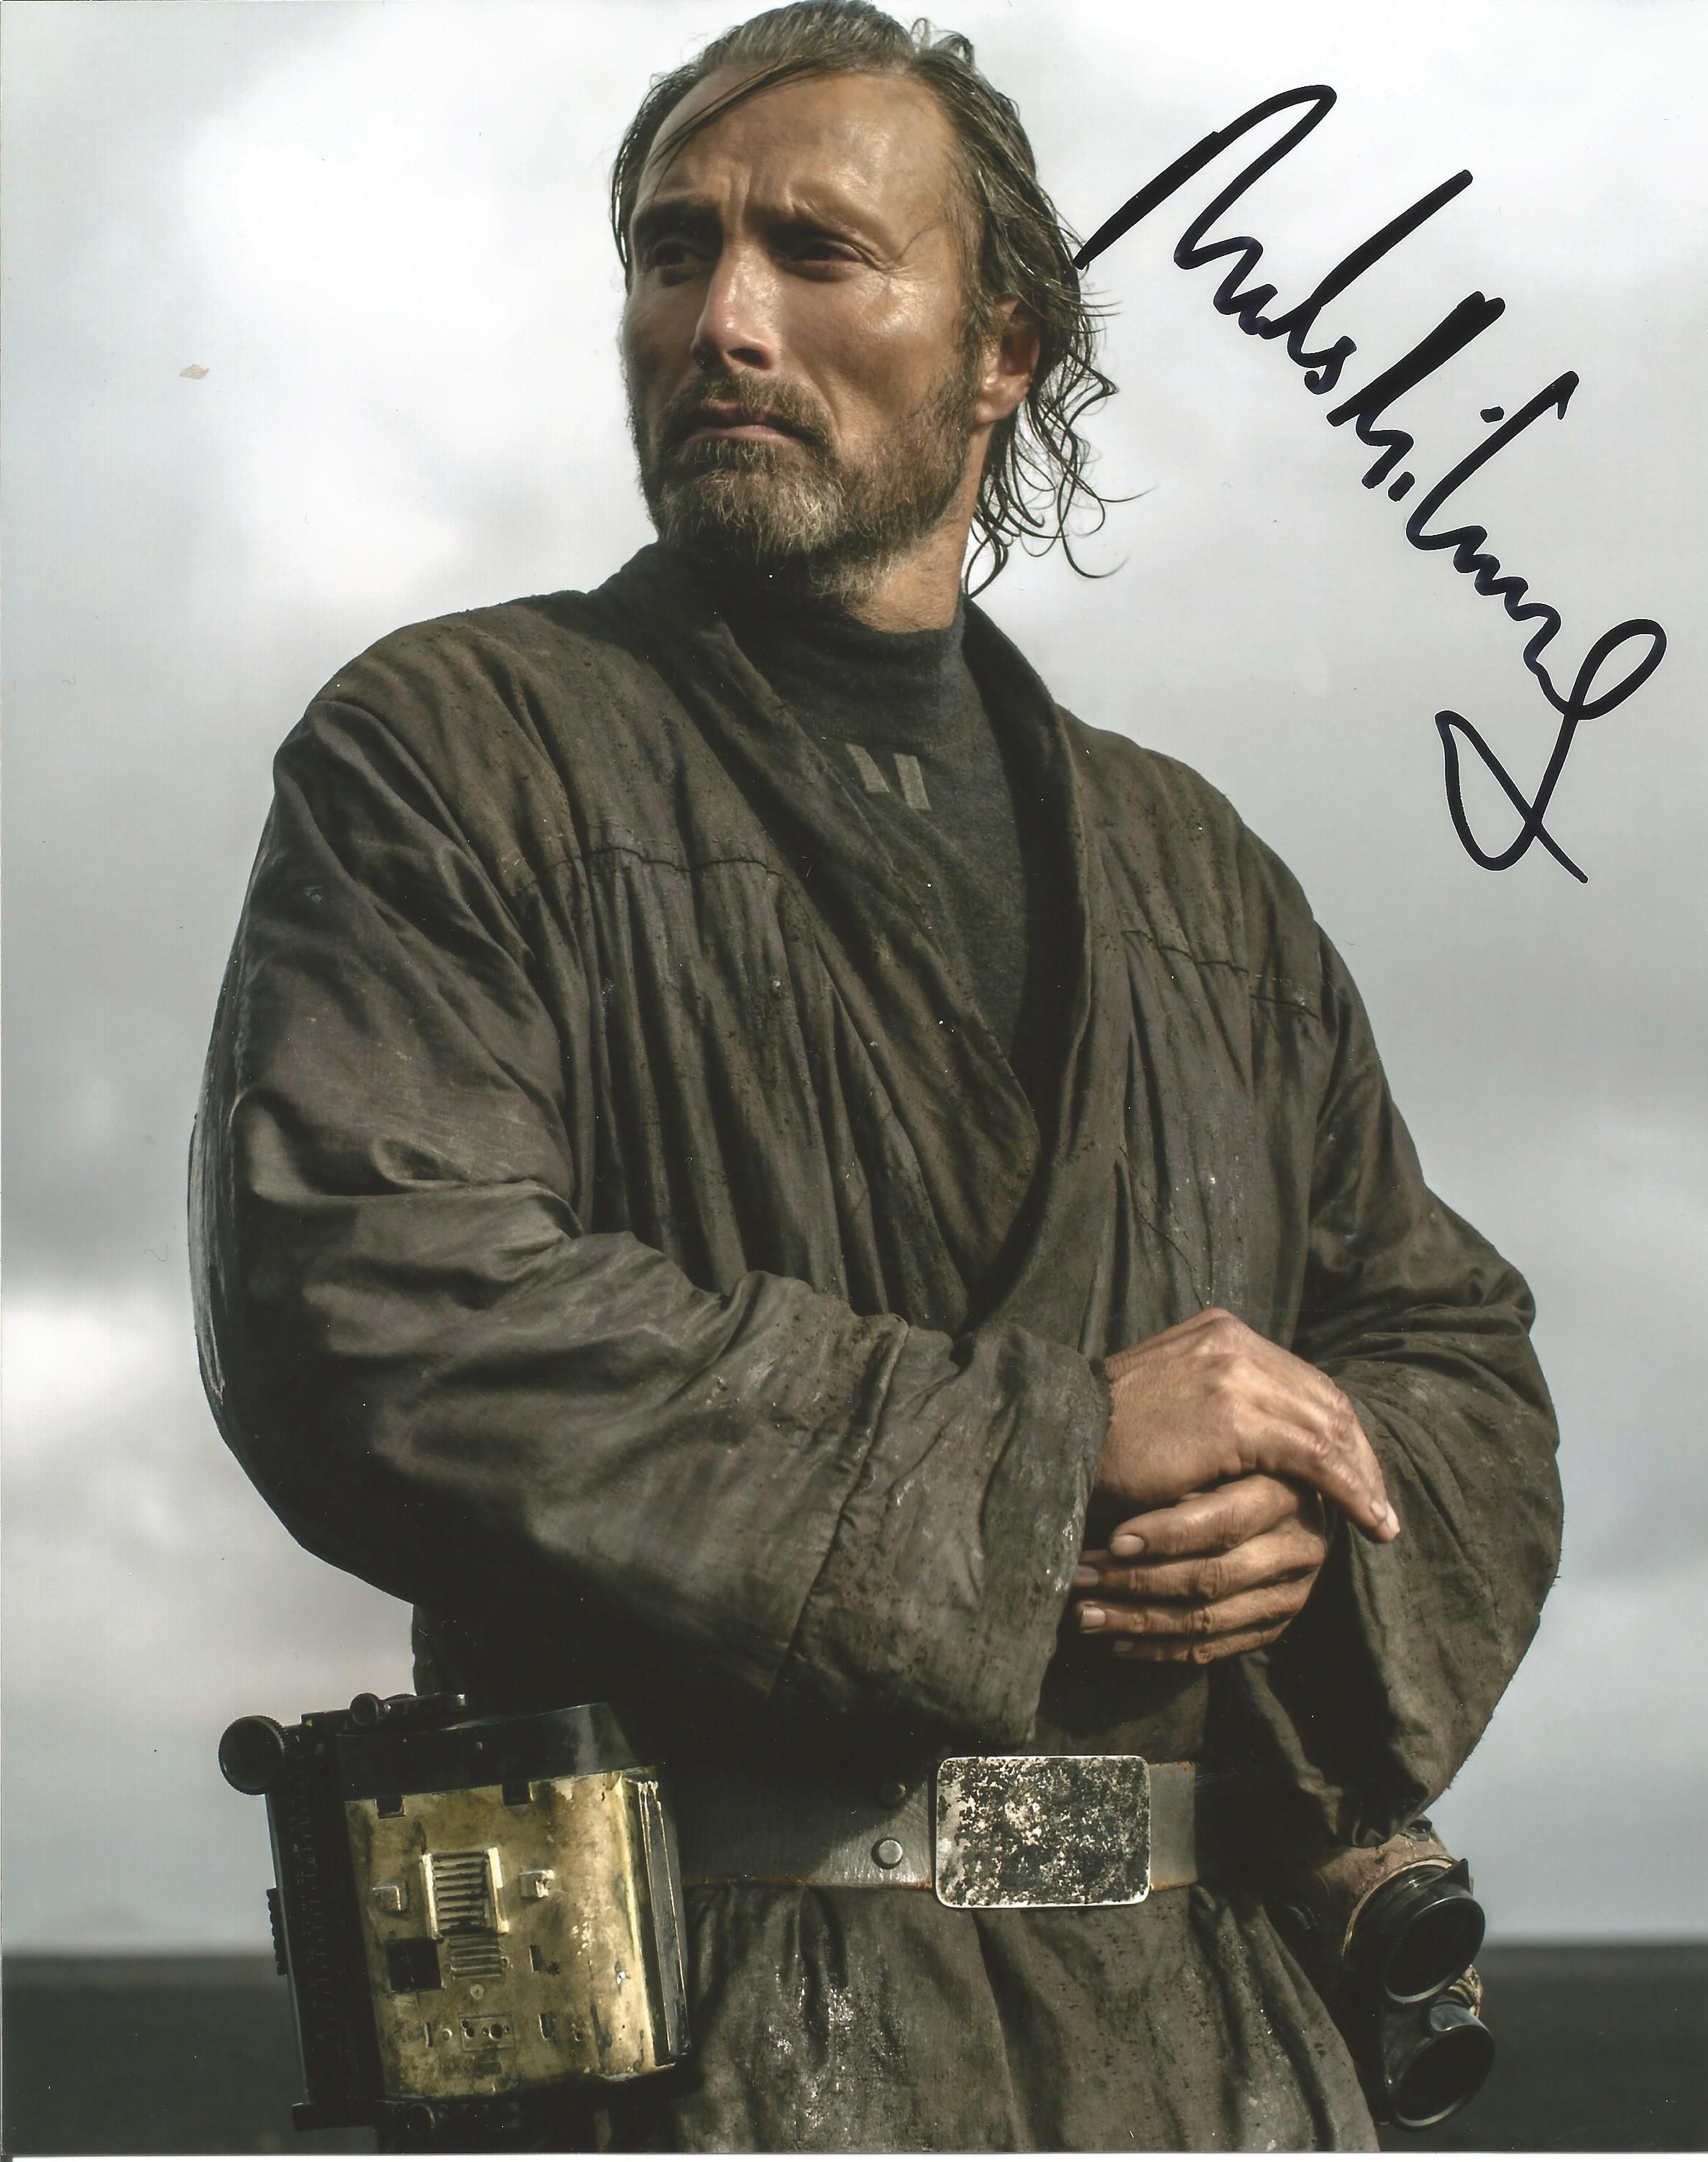 Mads Mikkelsen signed 10x8 colour photograph pictured as he portrays Galen Walton Erso in the 2016